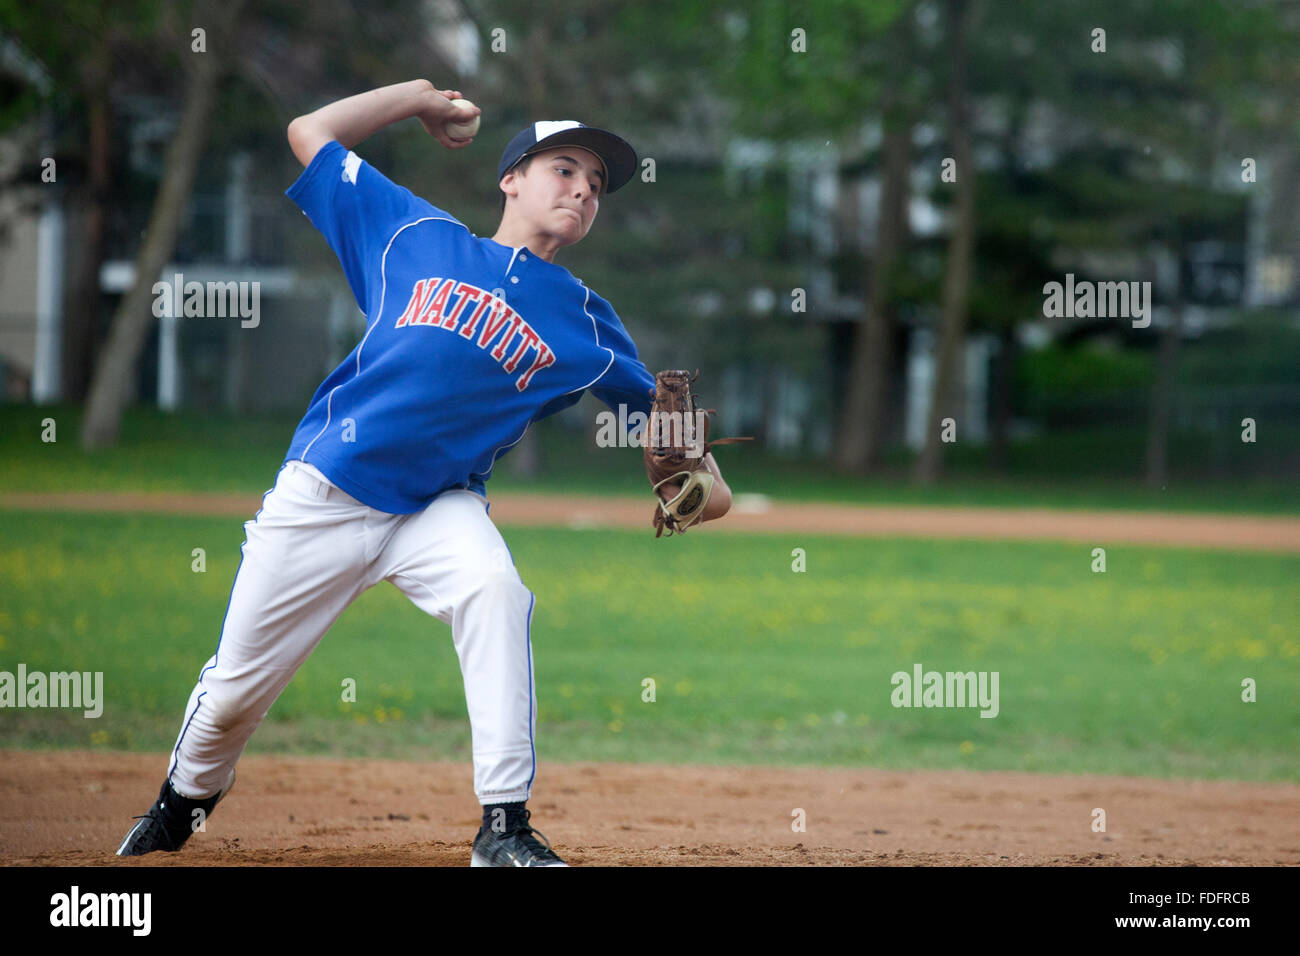 Baseball Pitchers Imágenes De Stock & Baseball Pitchers Fotos De ...